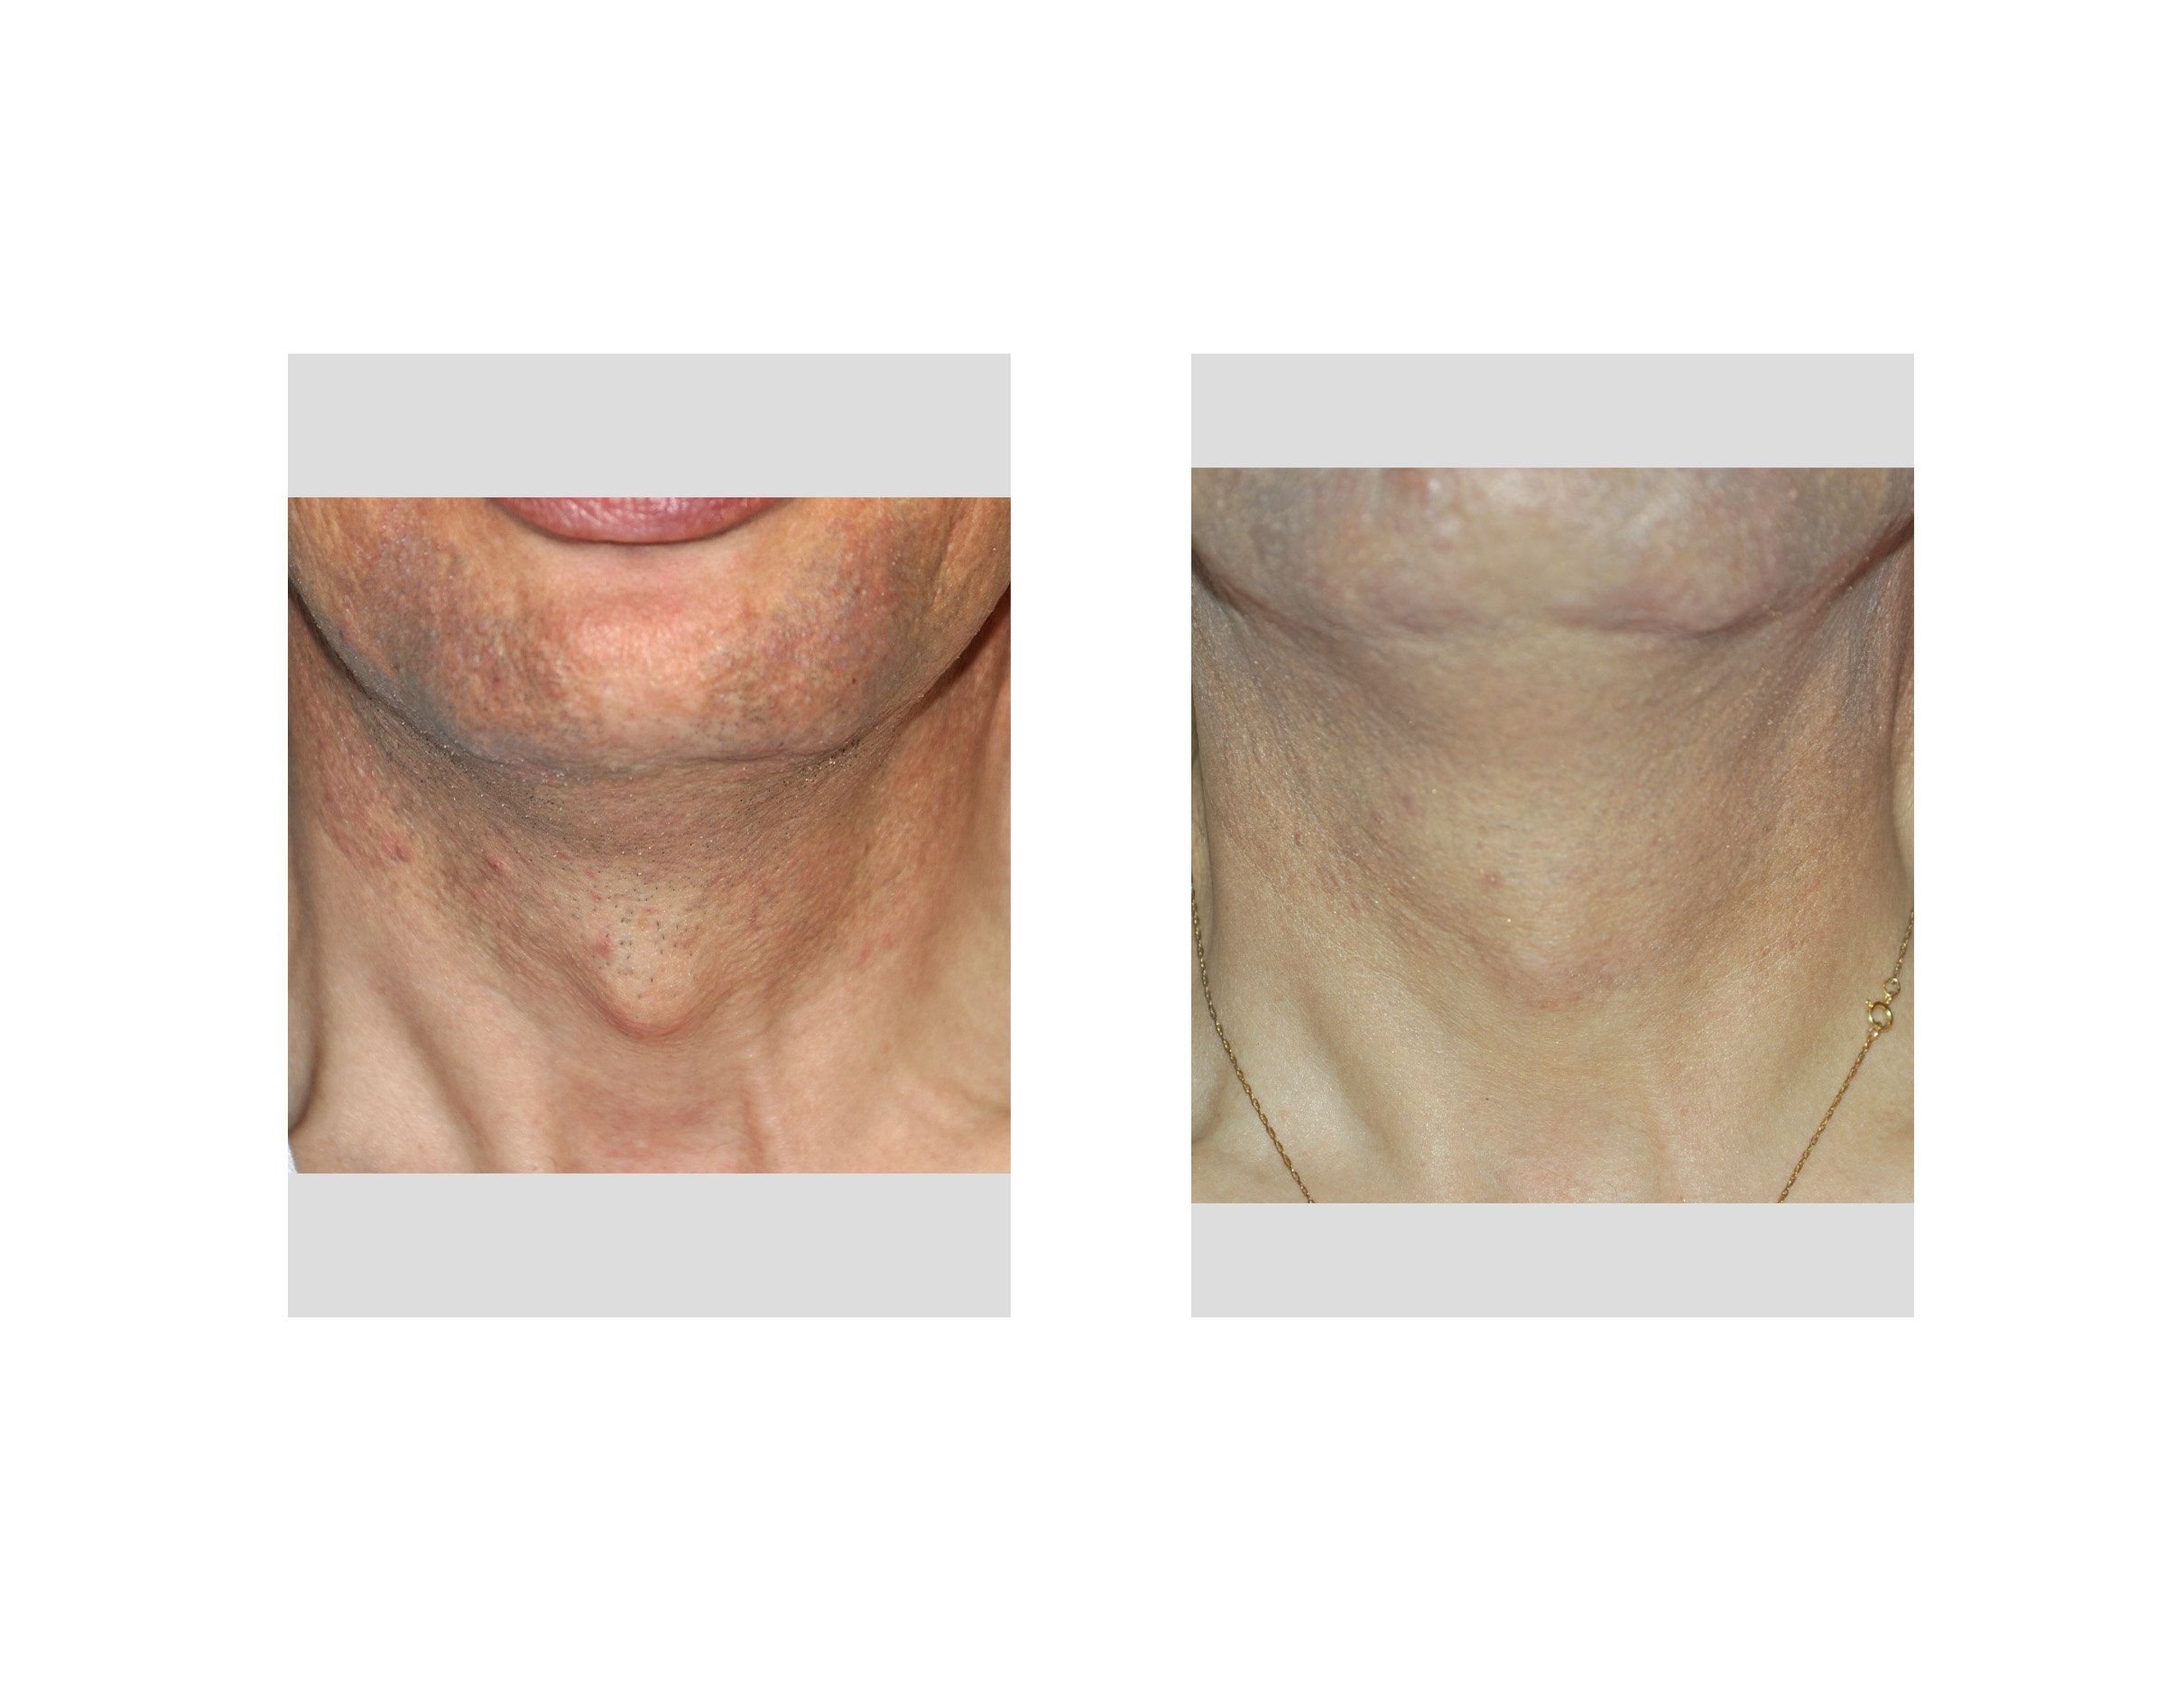 blog archiveconsent for plastic surgery tracheal shave adam s